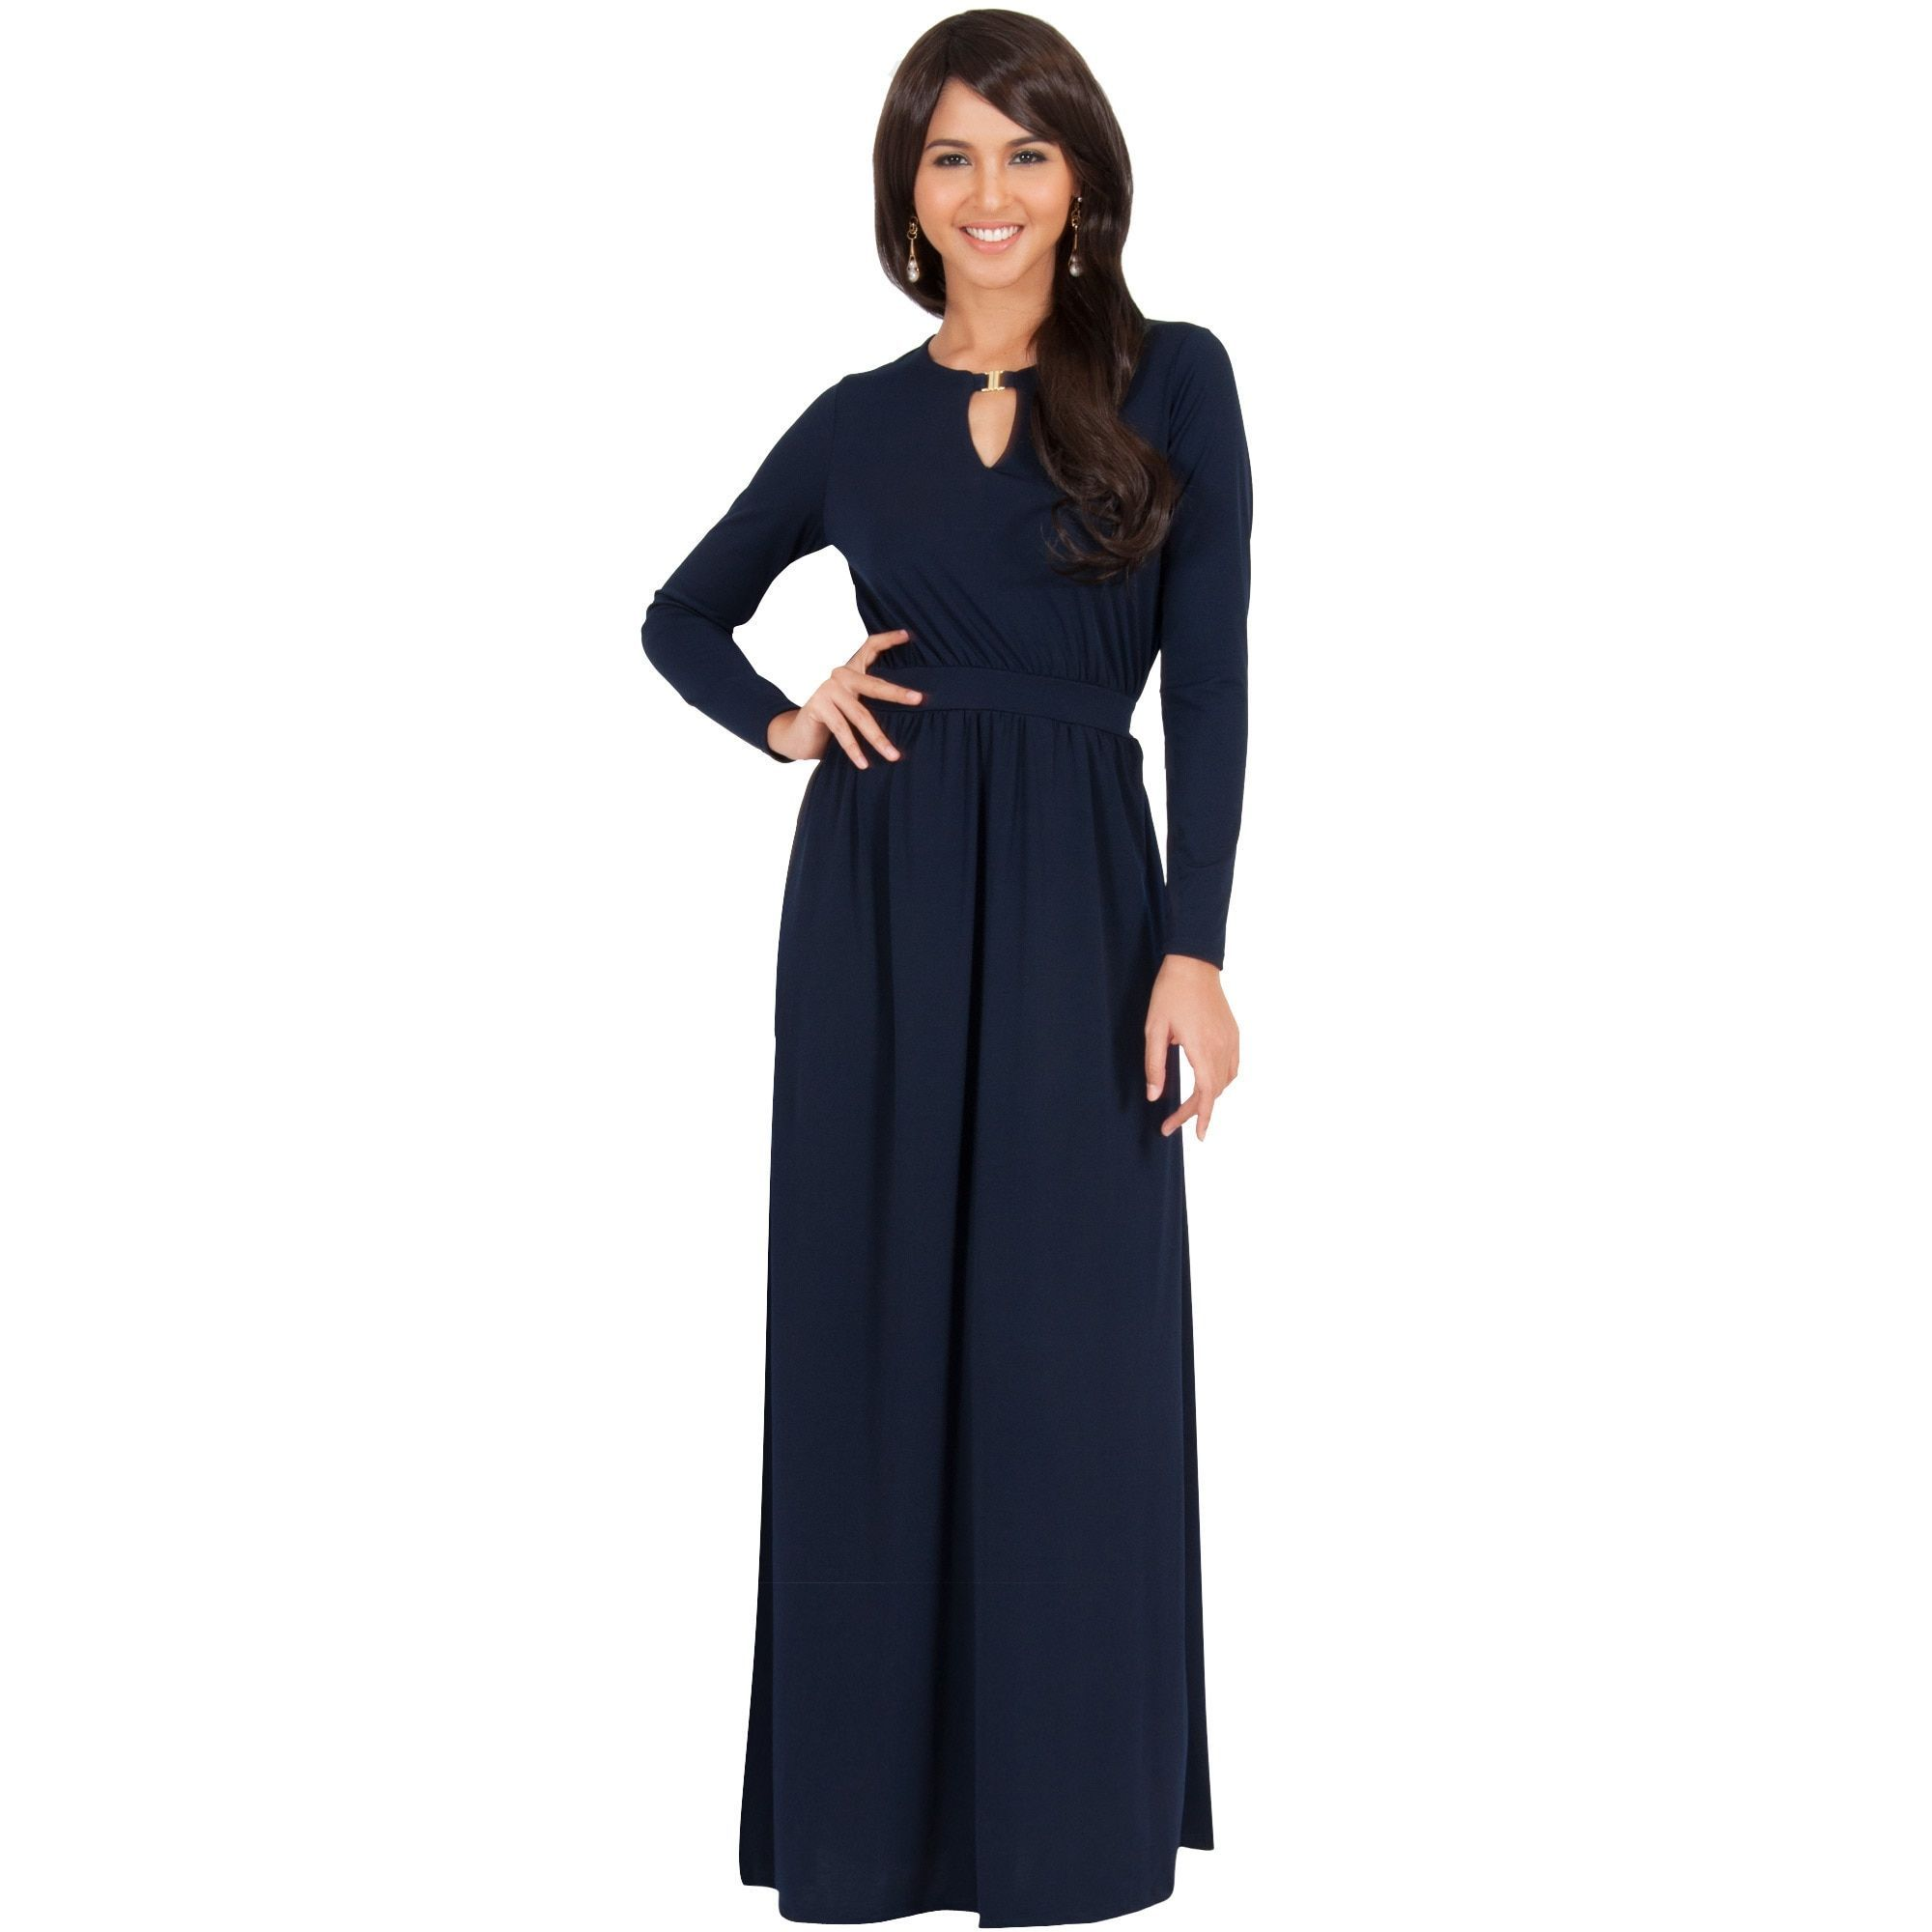 Global koh koh womenus long sleeve key hole slimming elegant maxi